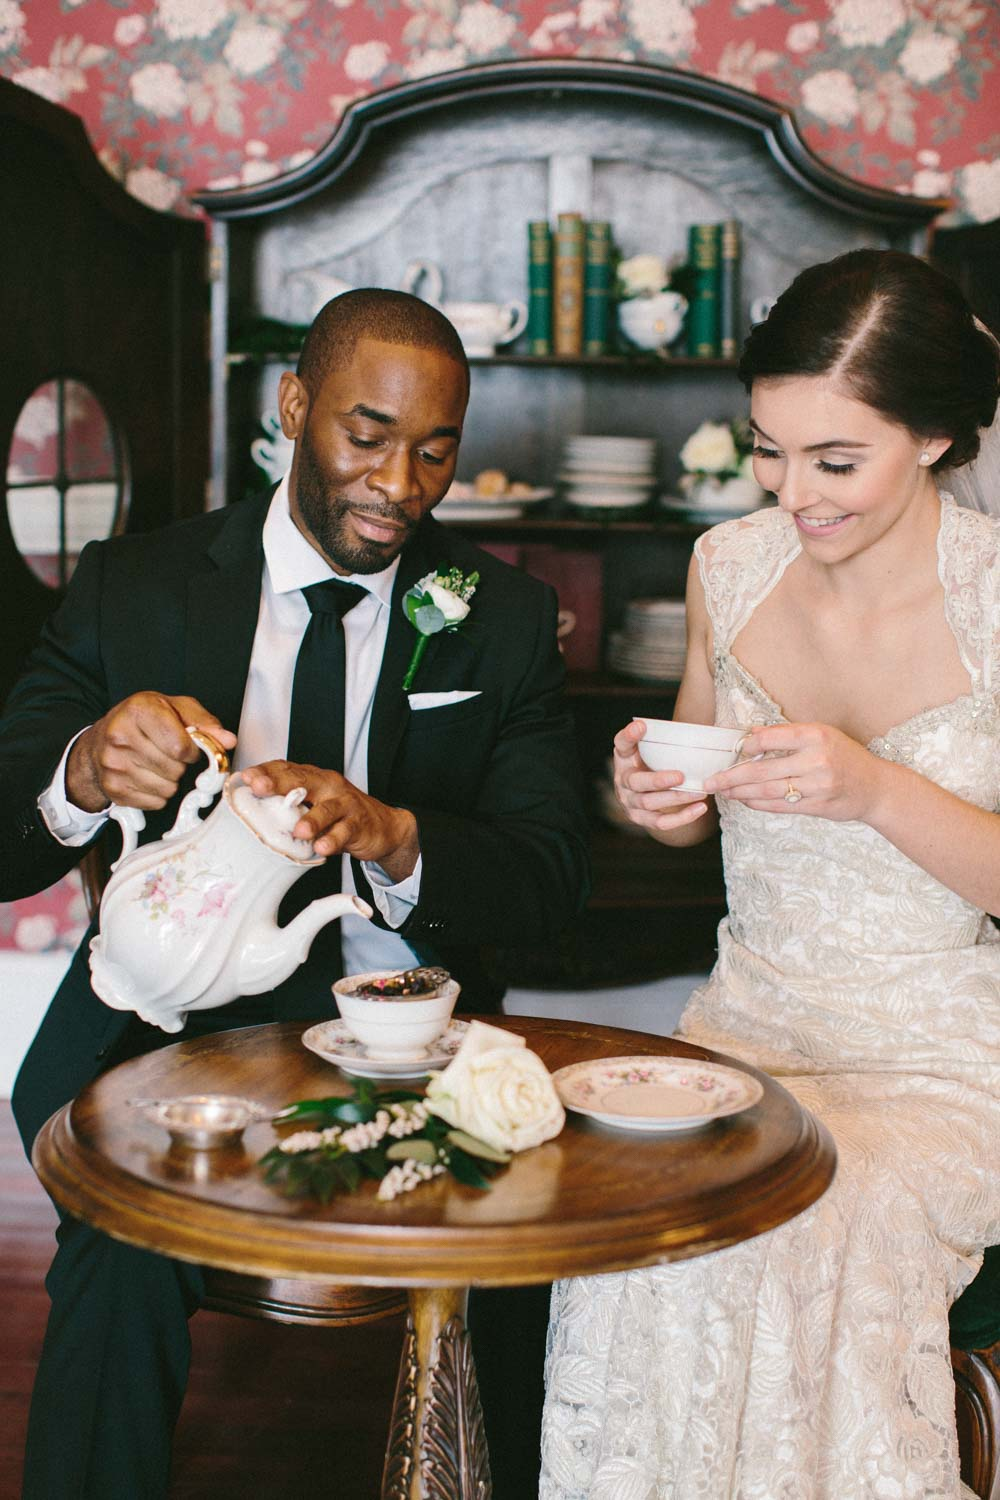 bride and groom having tea in detailed floral china